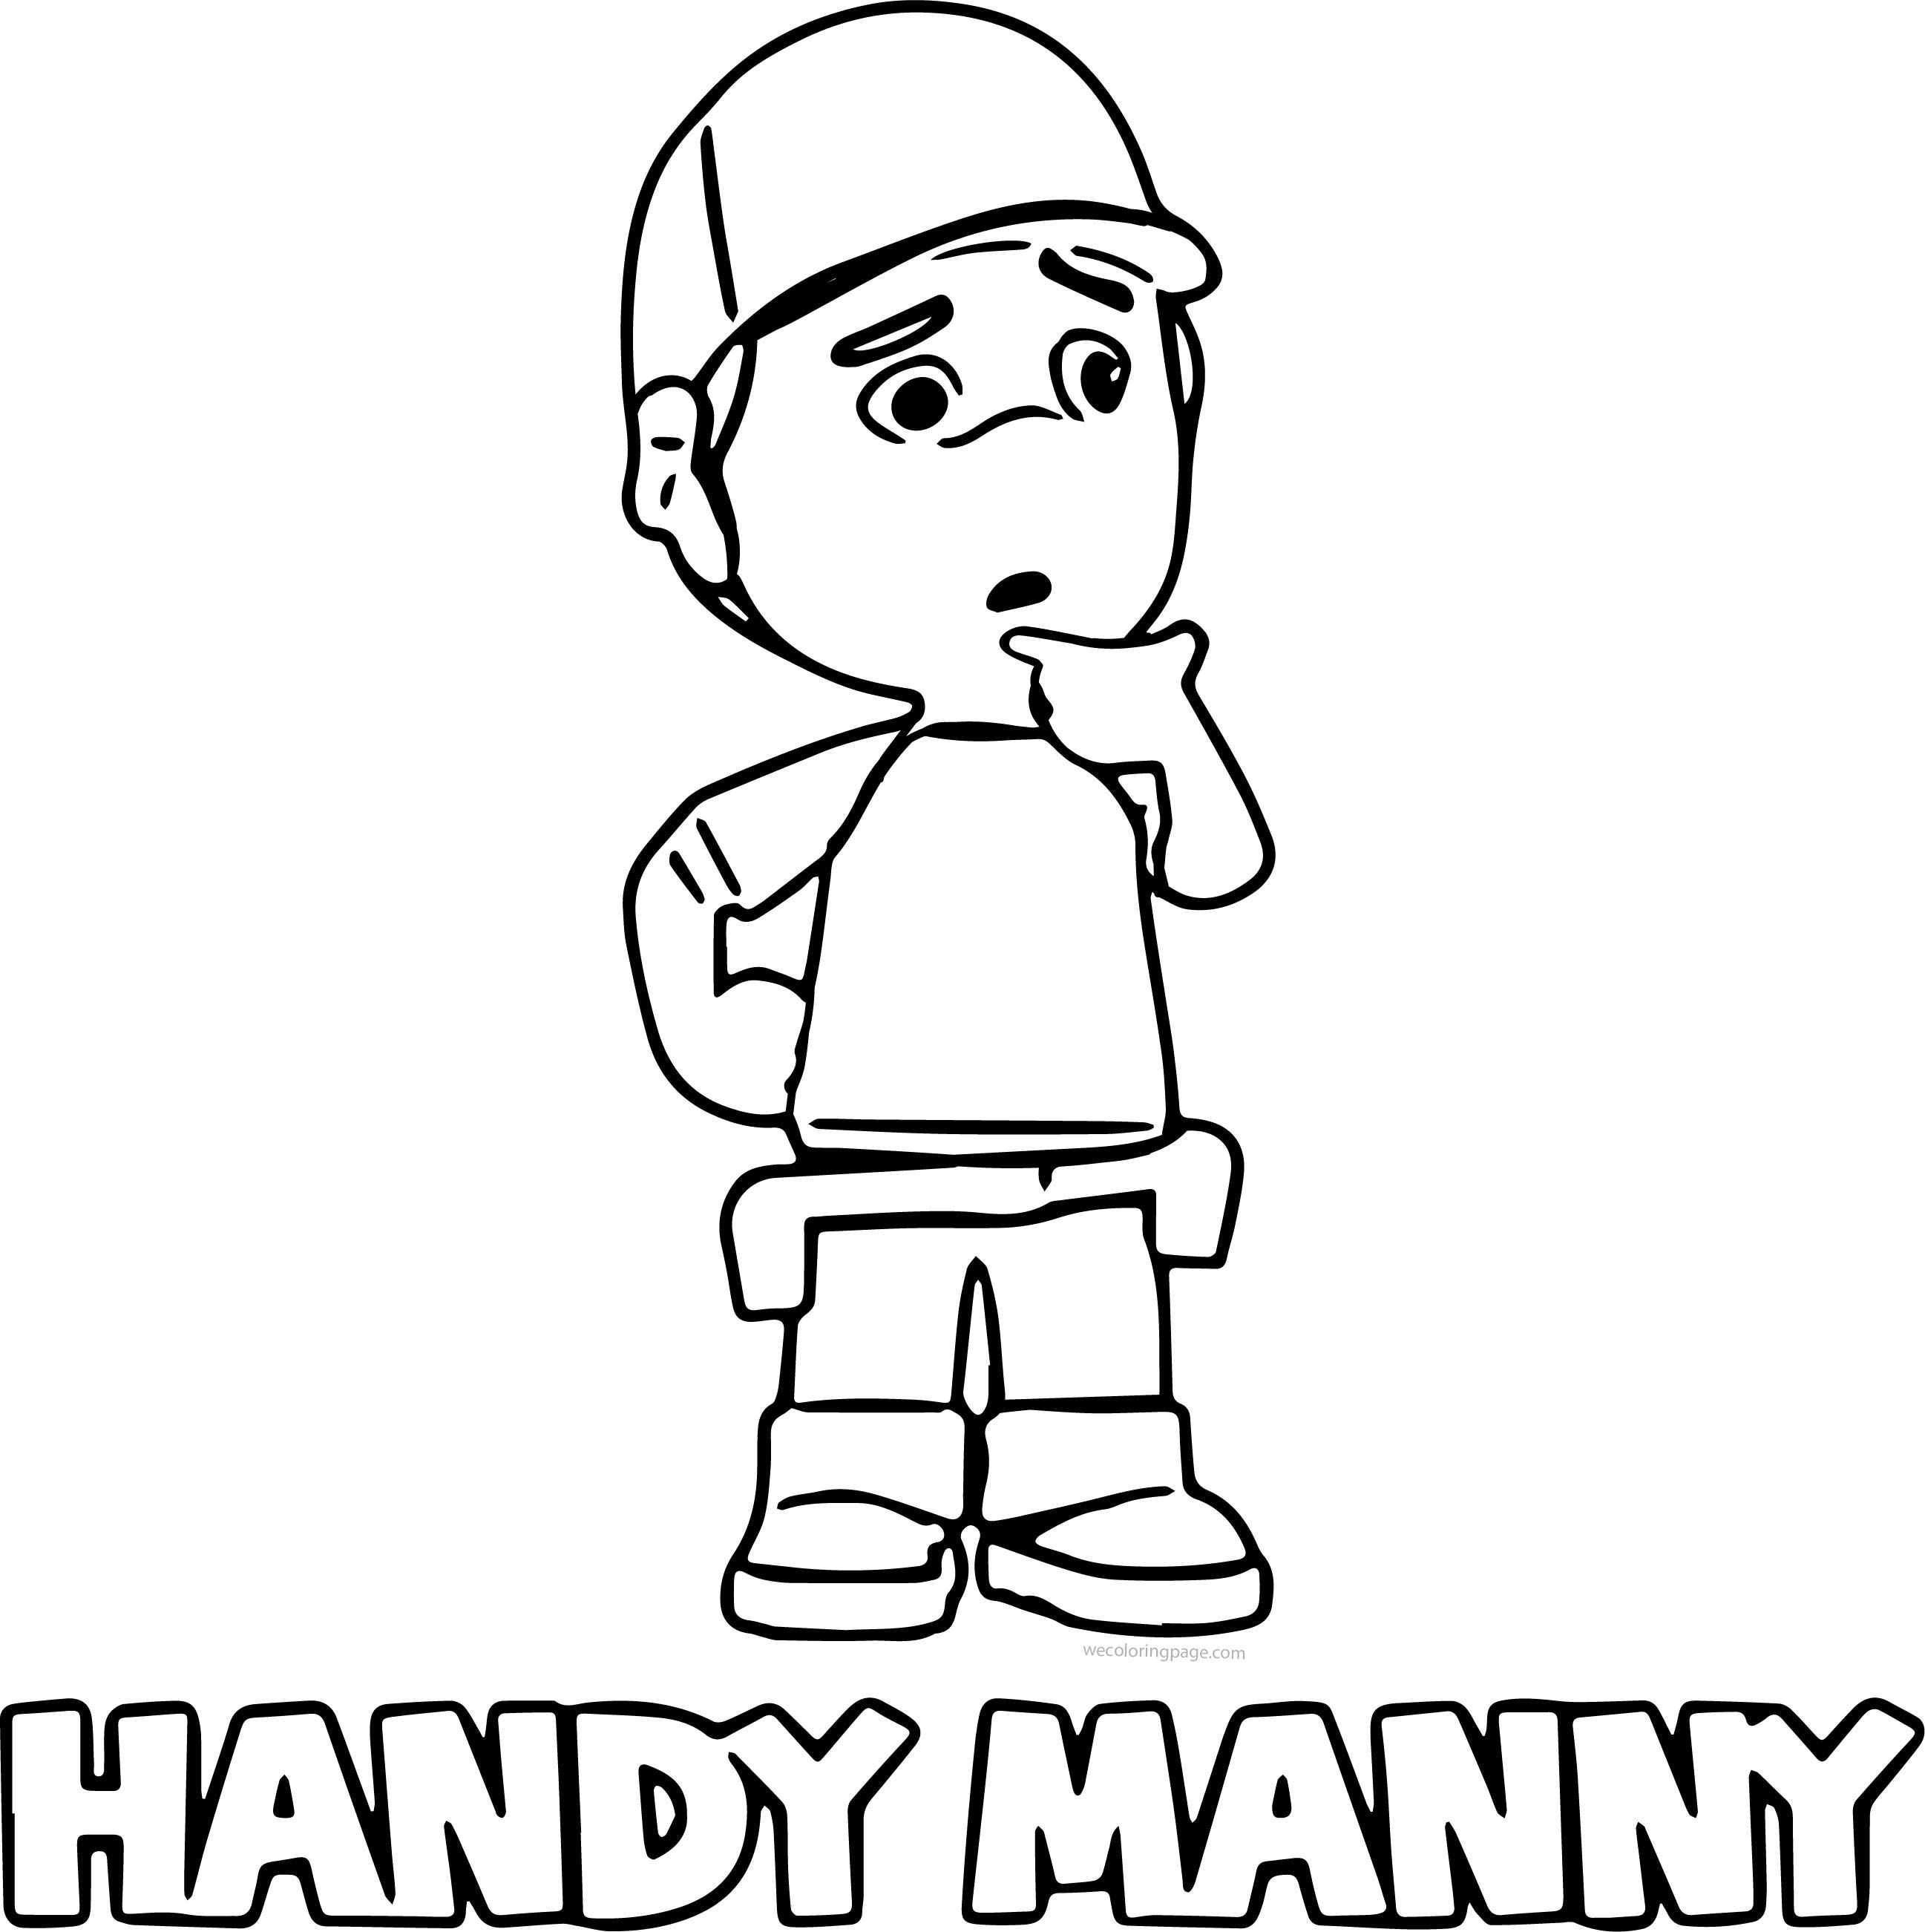 awesome Thinking Handy Manny Coloring Page | wecoloringpage | Pinterest